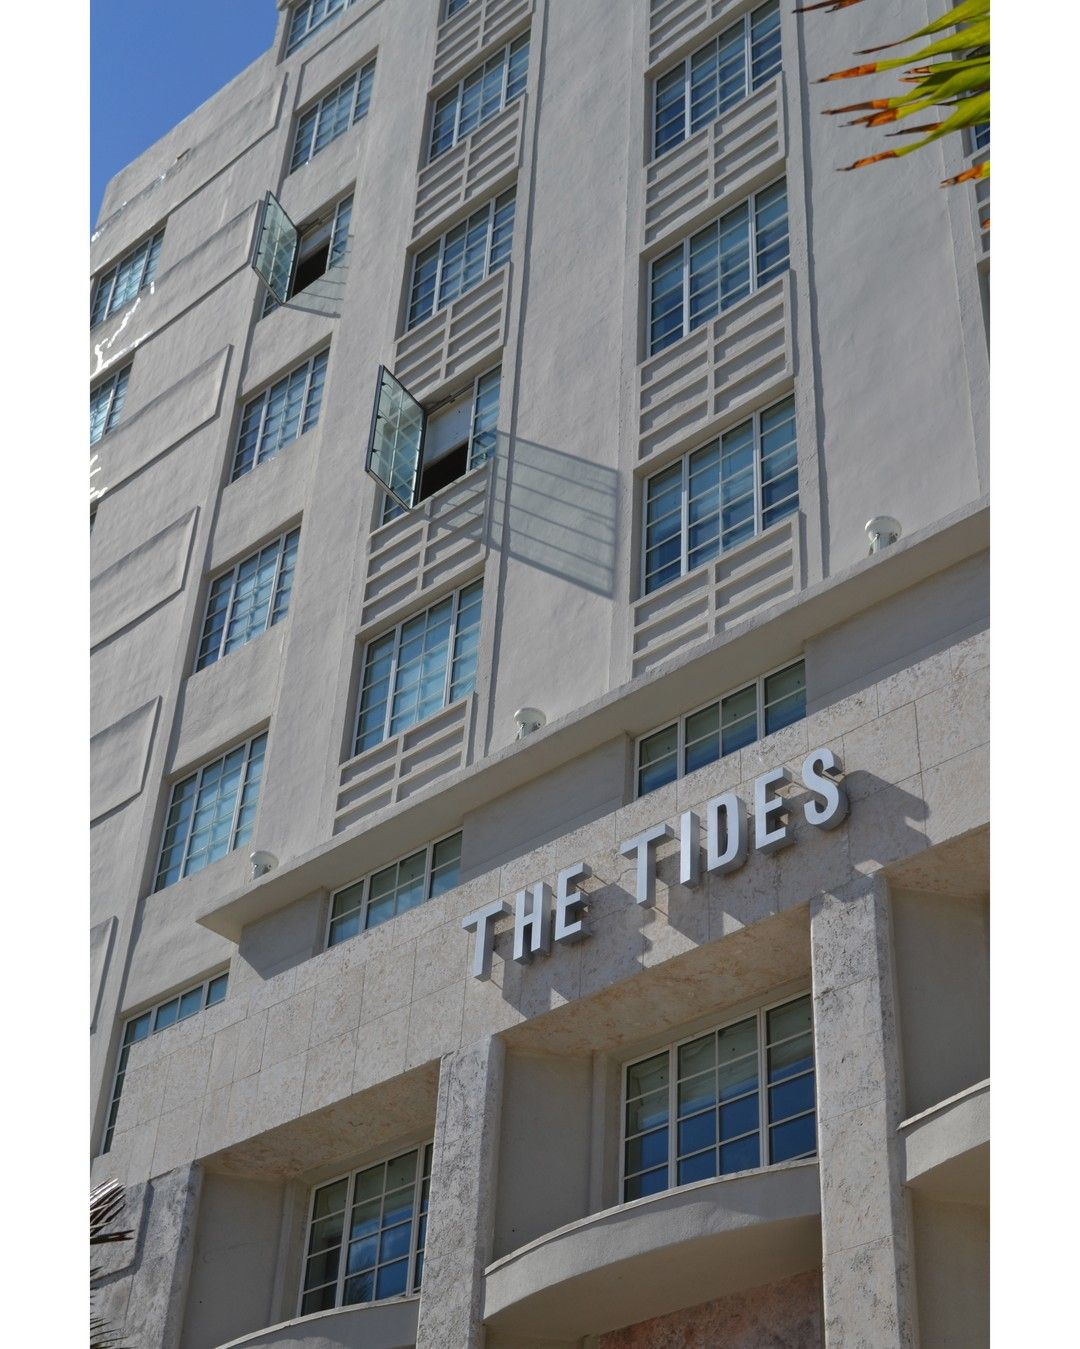 tourtuesday enjoy our daily art deco district walking tours and